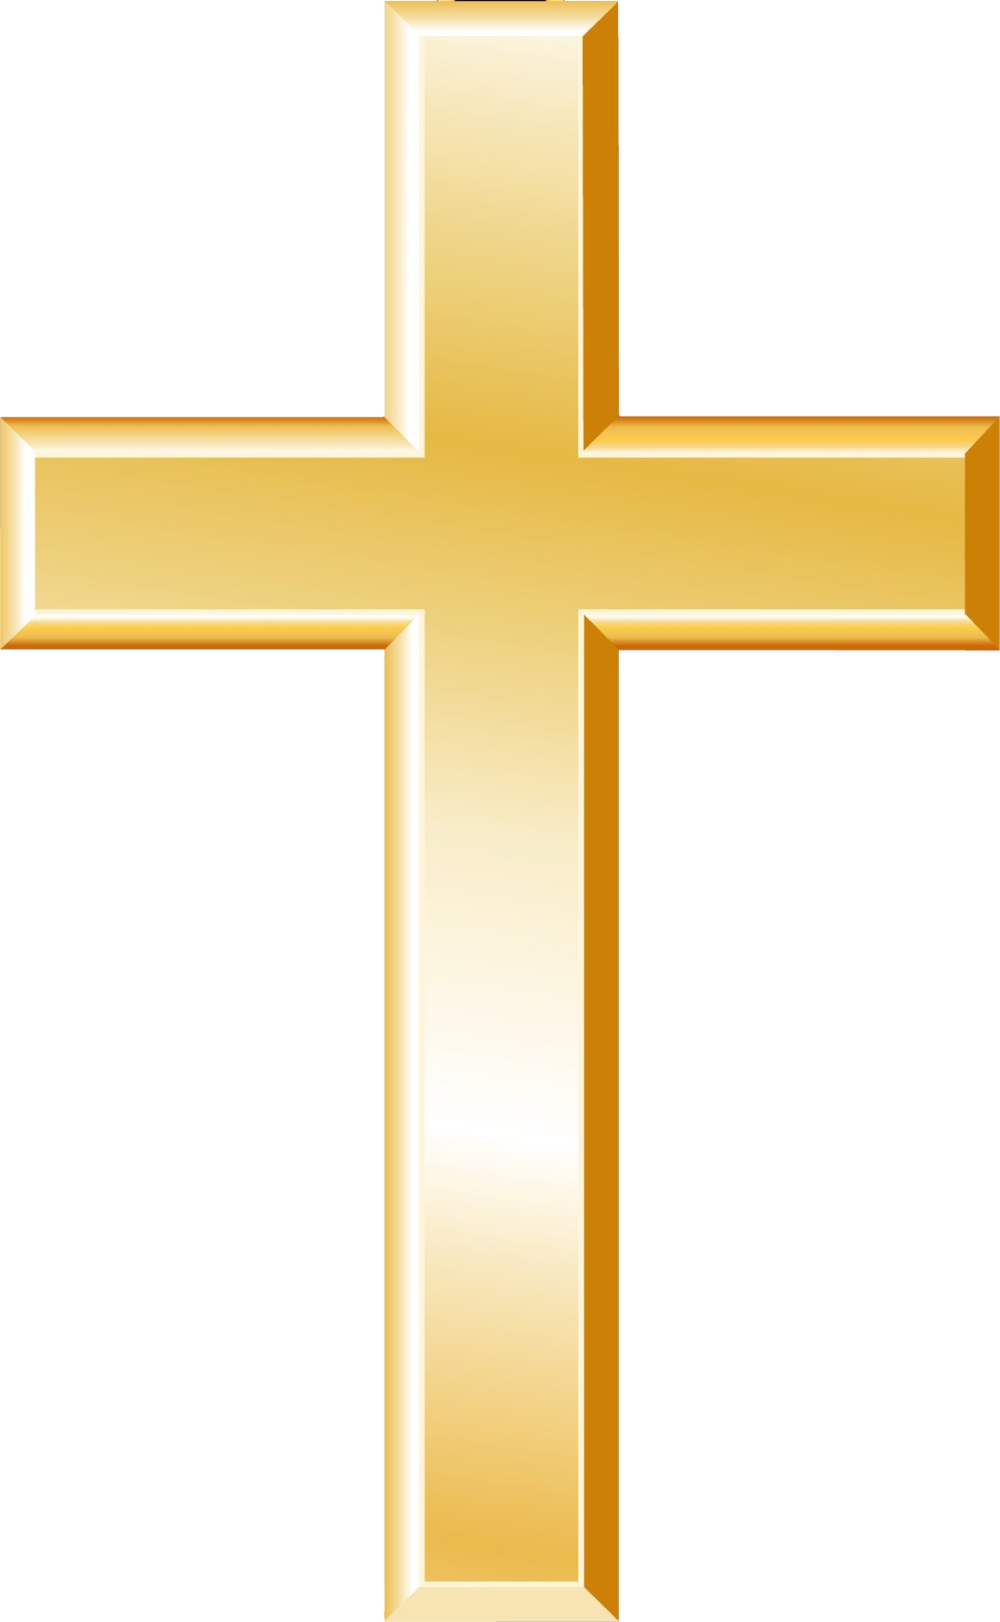 Png Images Free Download Clipart Black Christian Cross Christian Symbols Cross Pictures